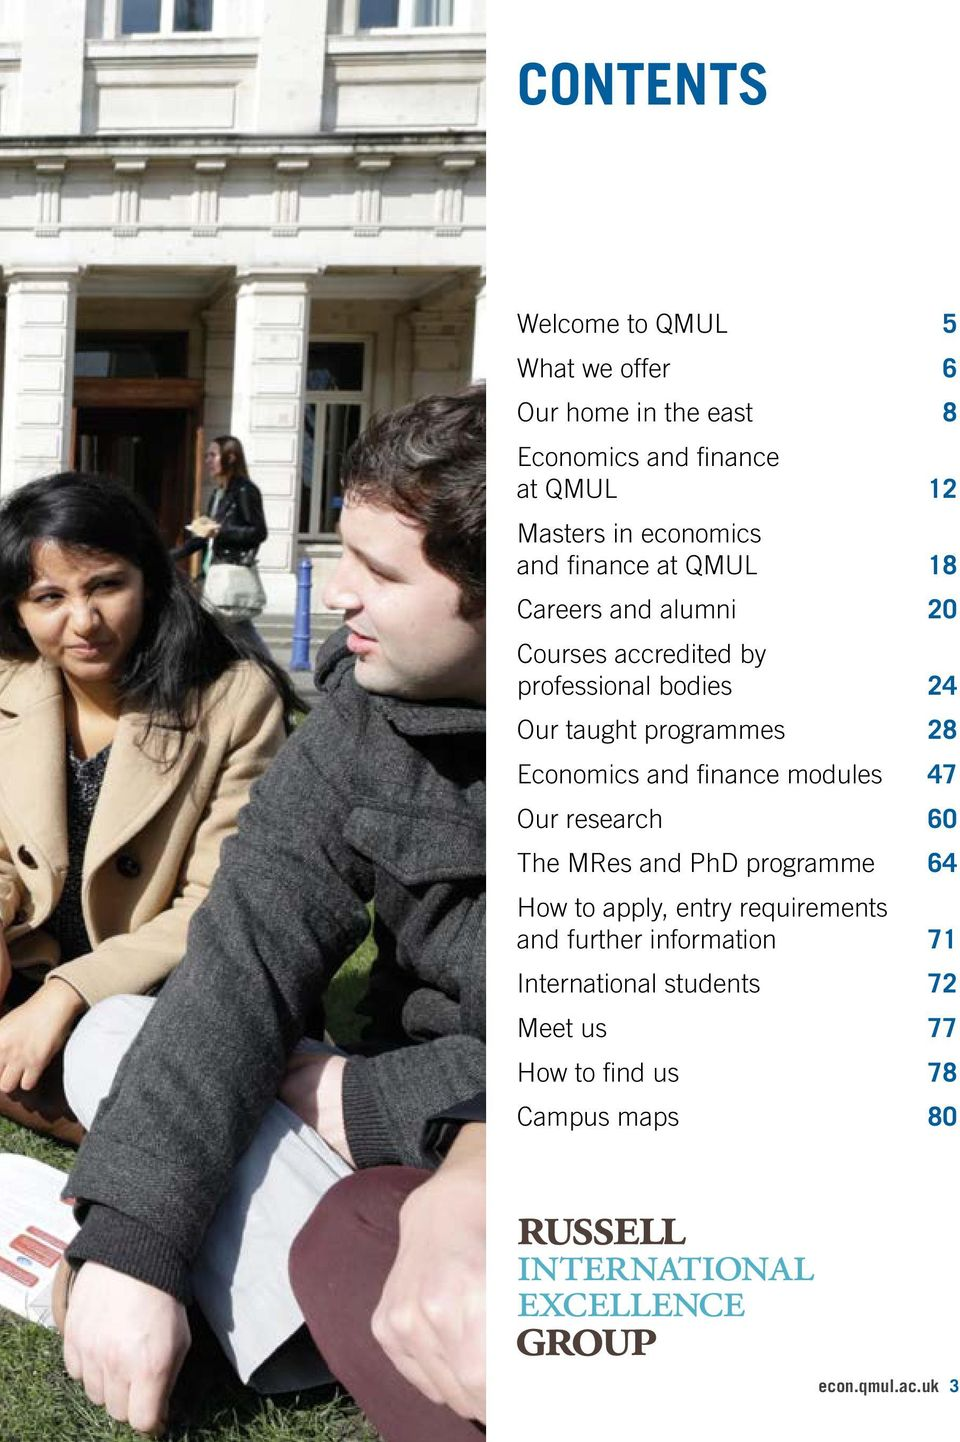 programmes 28 Economics and finance modules 47 Our research 60 The MRes and PhD programme 64 How to apply, entry